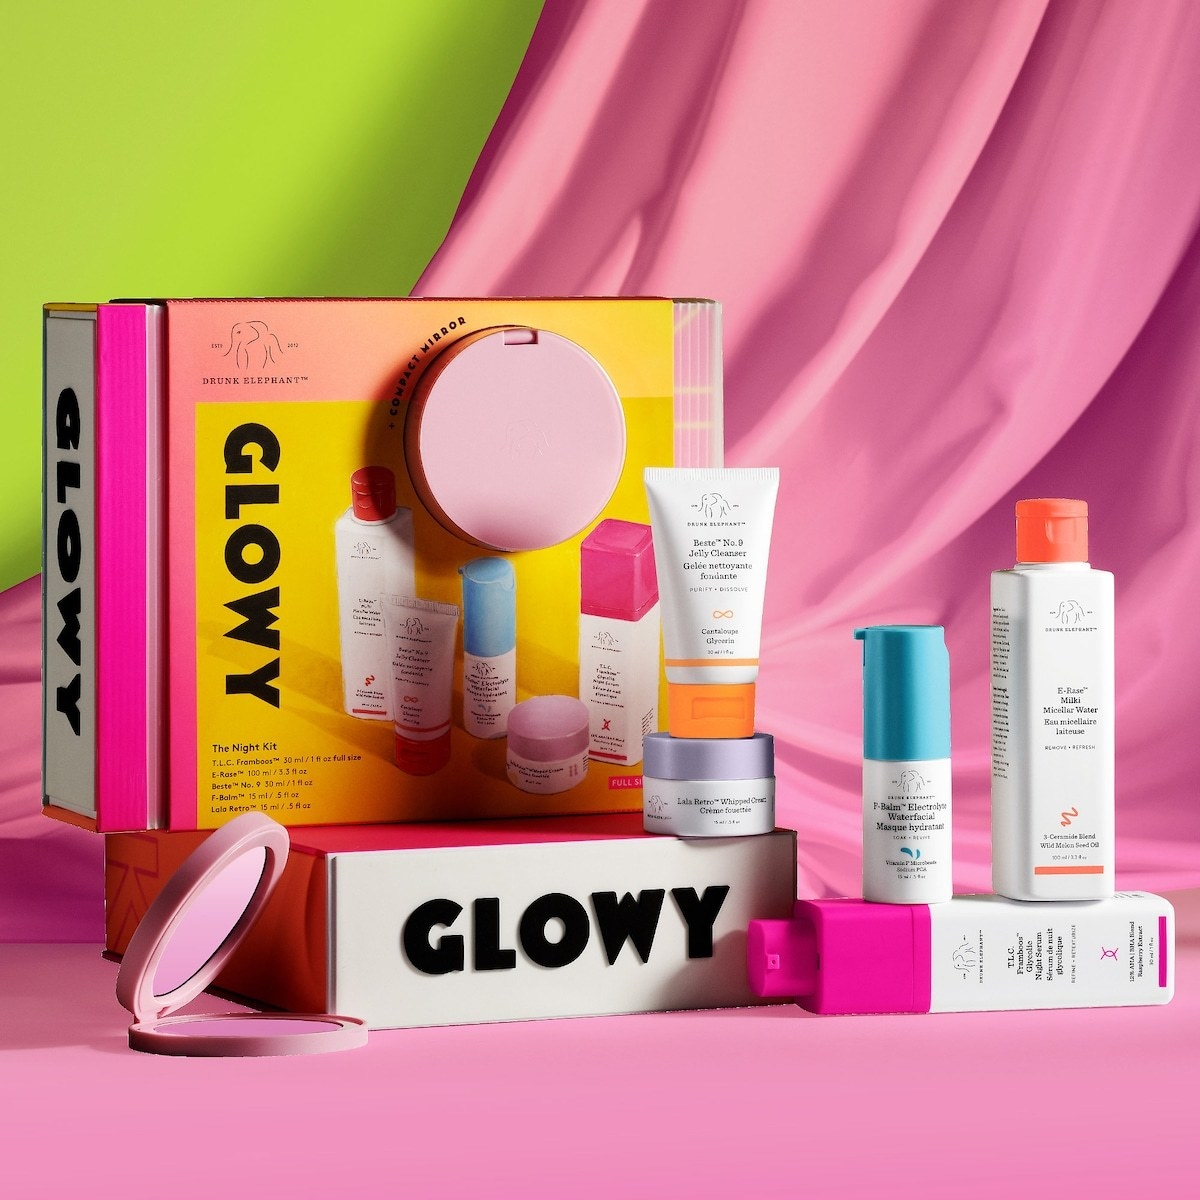 The collection's bright yellow and pink packaging and each of the included products